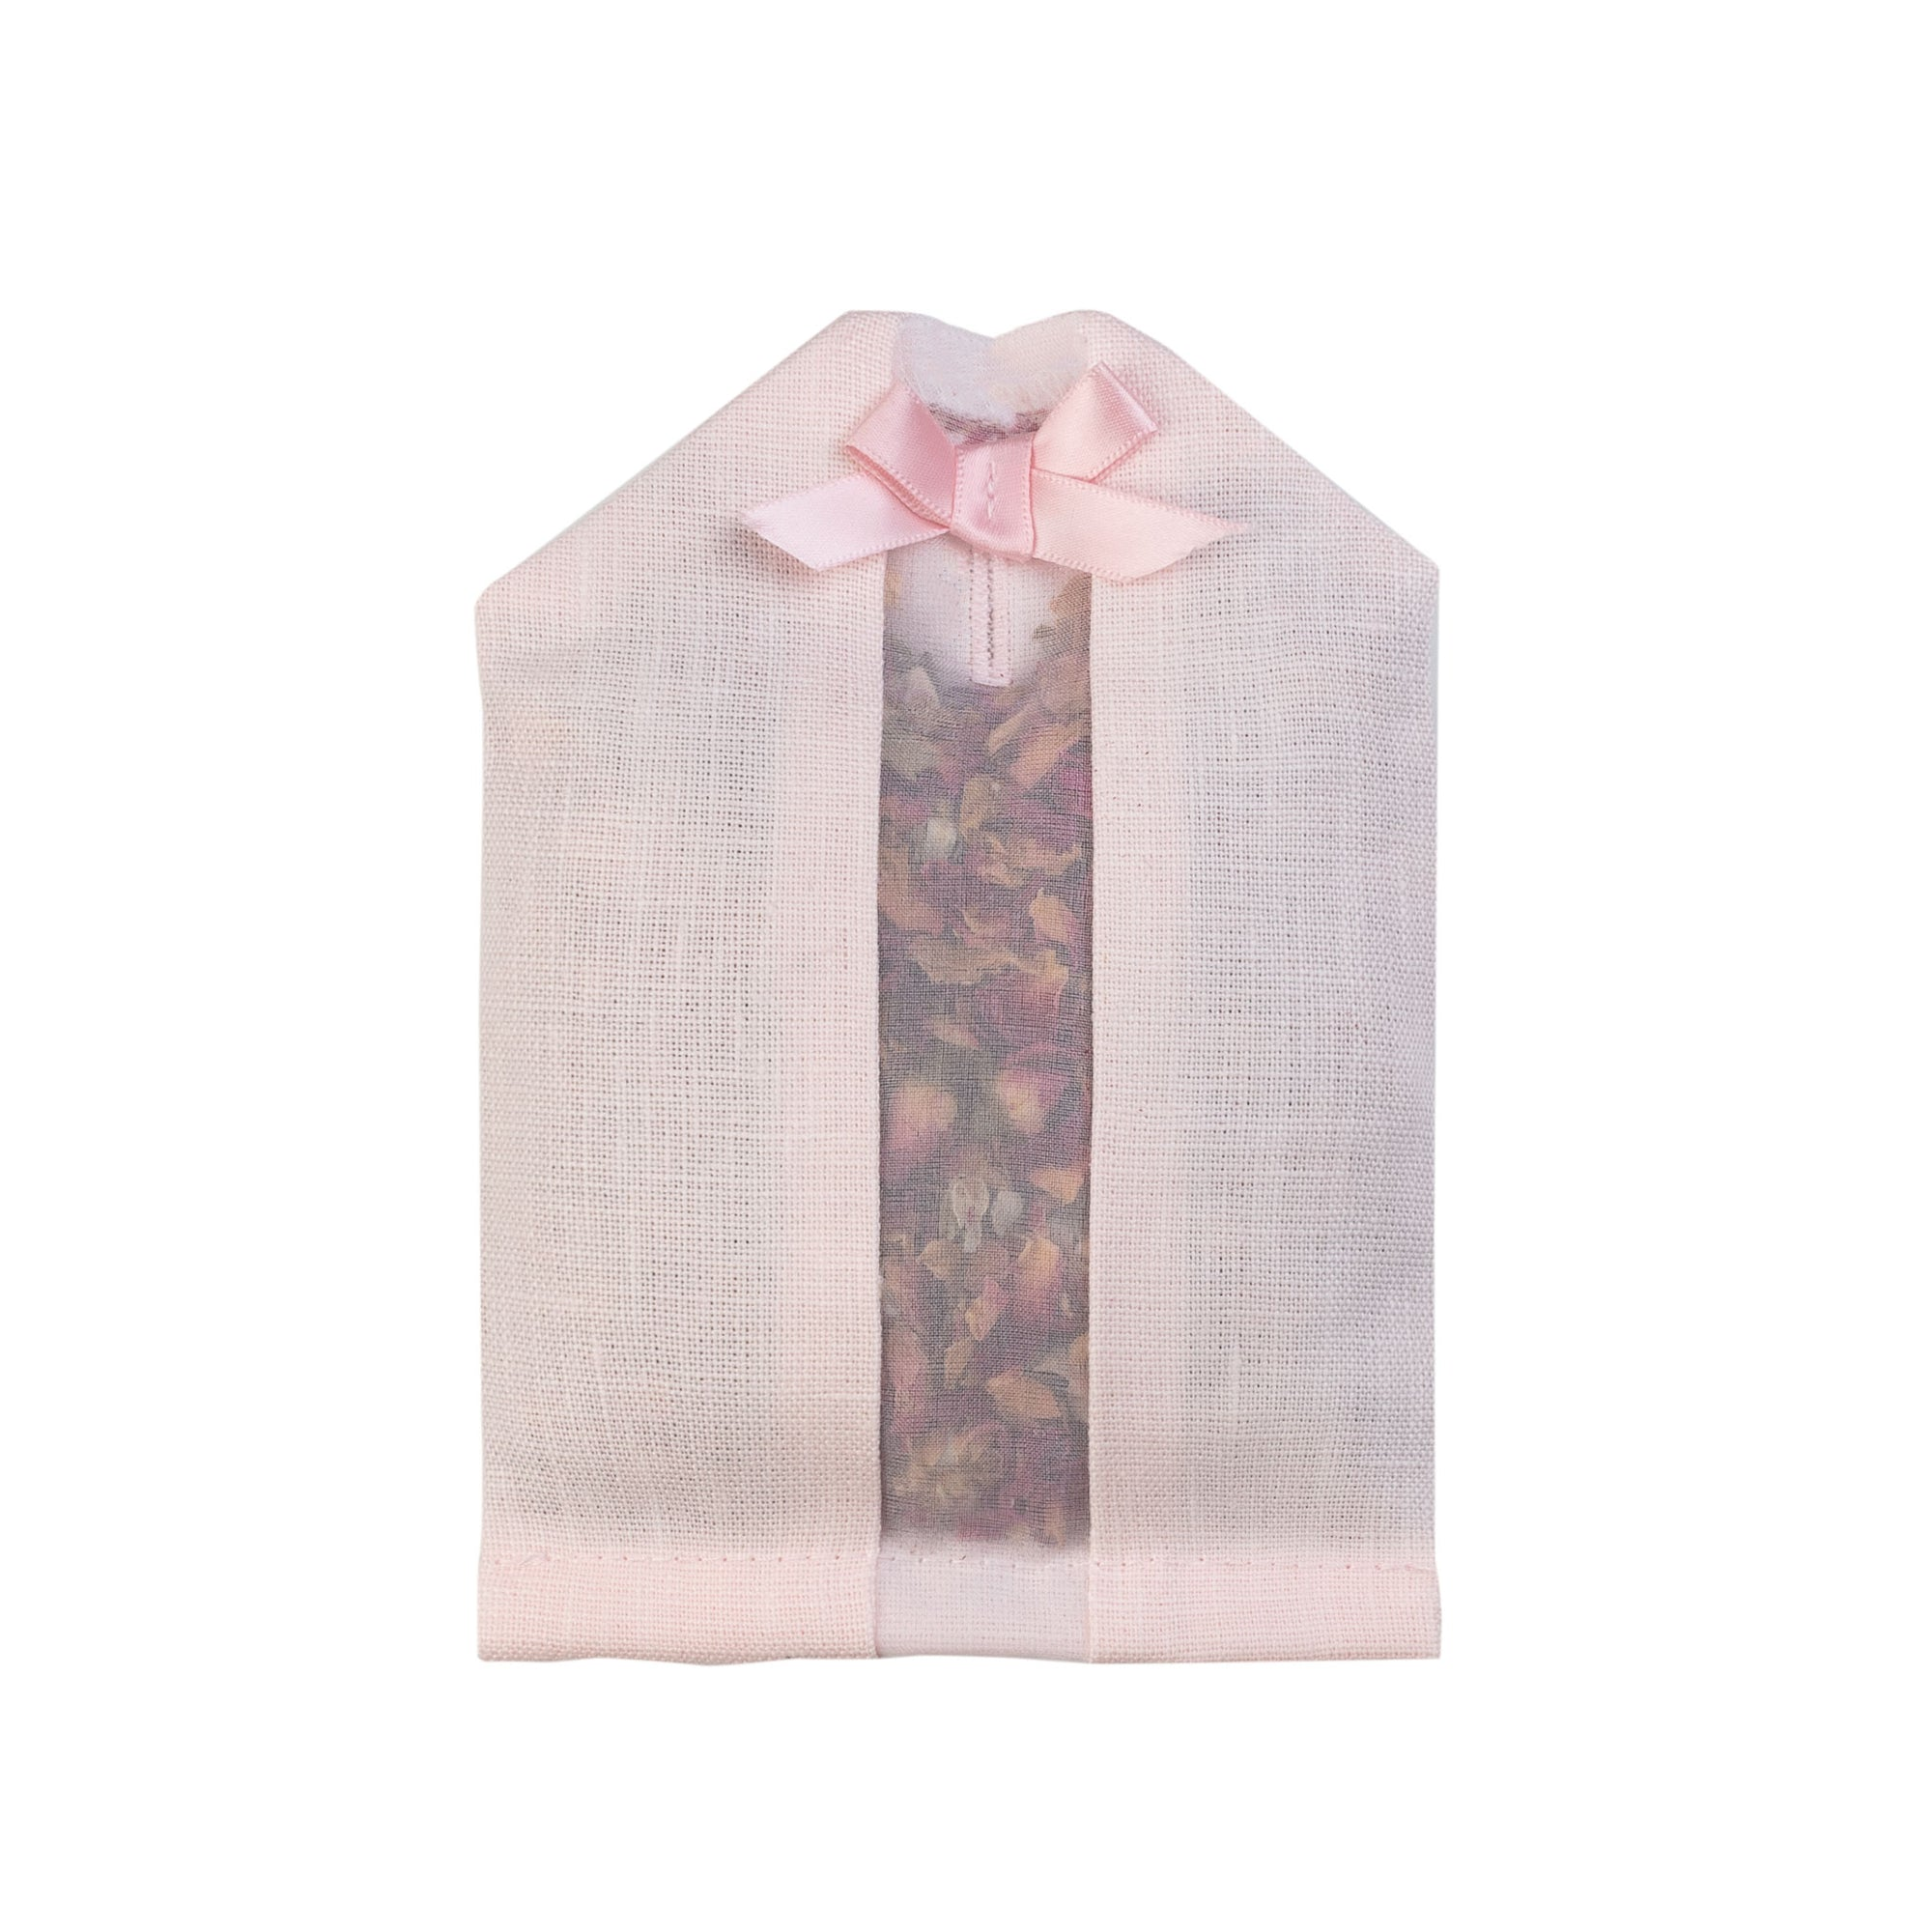 Dried rose petals filled inside of a pink linen hanger sachet